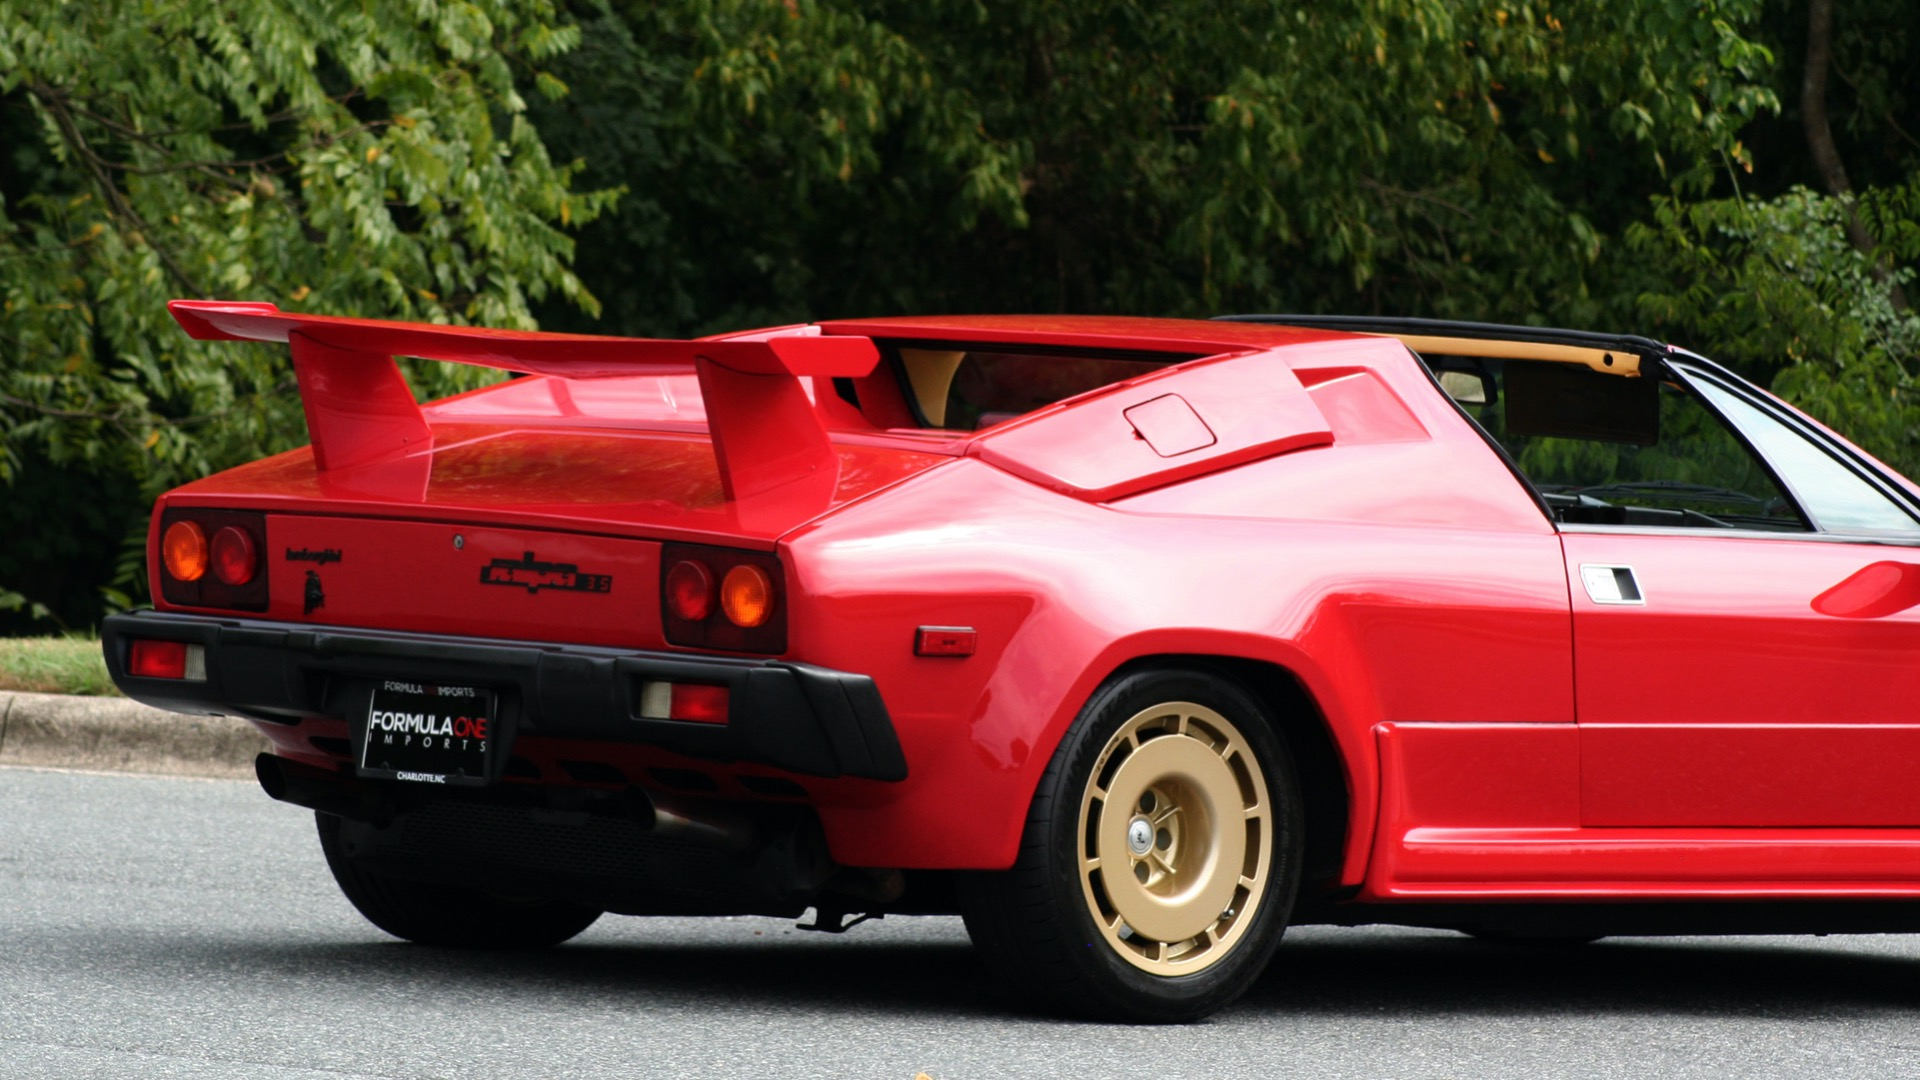 Used 1988 Lamborghini Jalpa 3.5 / 5-Speed Man / Low Miles / Excellent Condition for sale $108,995 at Formula Imports in Charlotte NC 28227 10